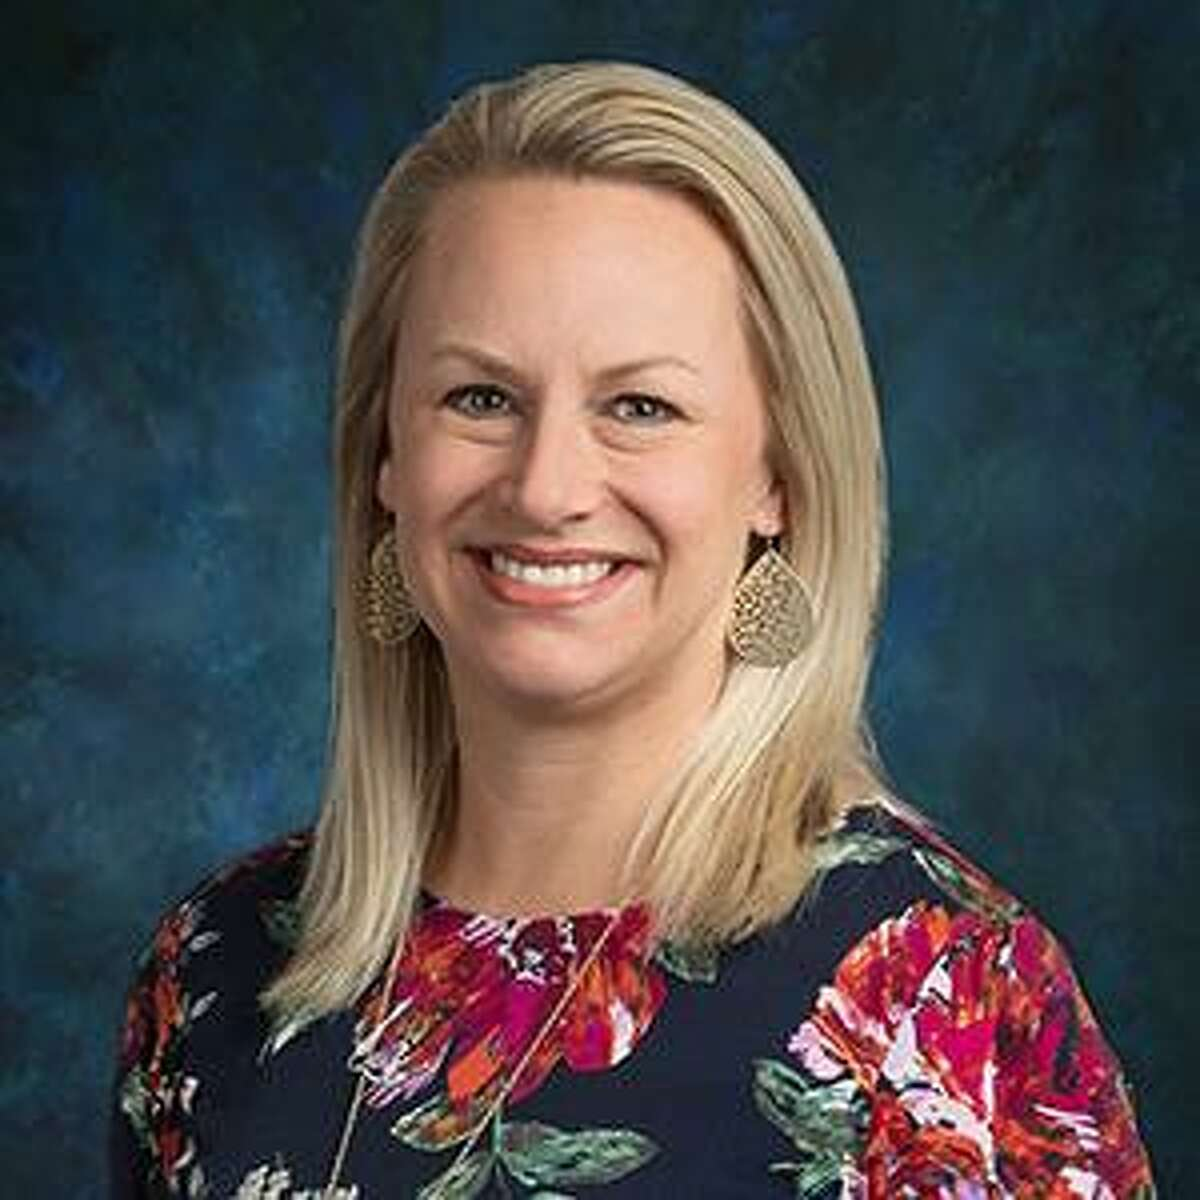 Courtney Spradley will run for Position 5 in the 2021 Trustee Election and drew the No. 1 ballot position.